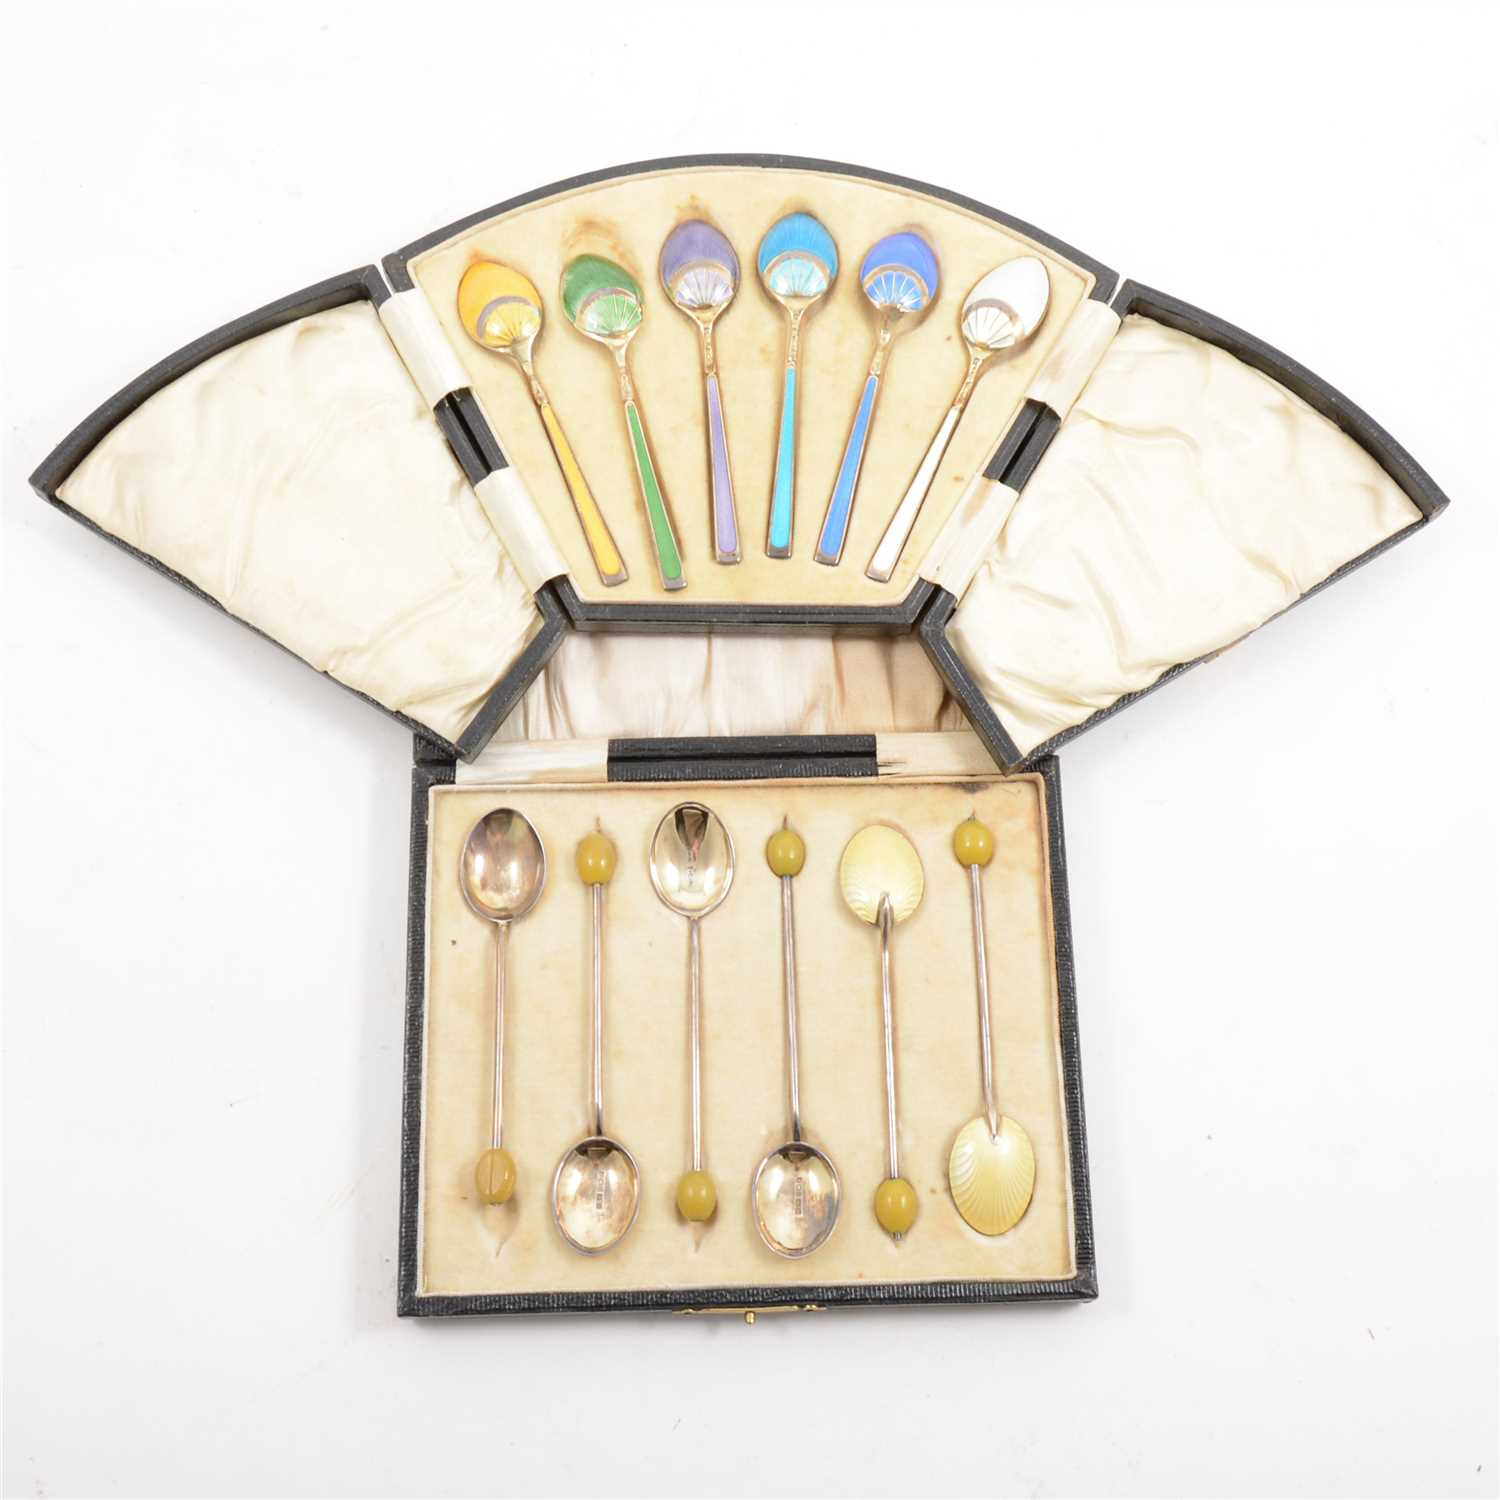 Lot 244 - A cased set of silver gilt and enamelled teaspoons by Levi & Salaman, Birmingham 1925, and a cased set of silver and enamelled coffee spoons by Henry Clifford Davis, bean finials, Birmingham 1926.